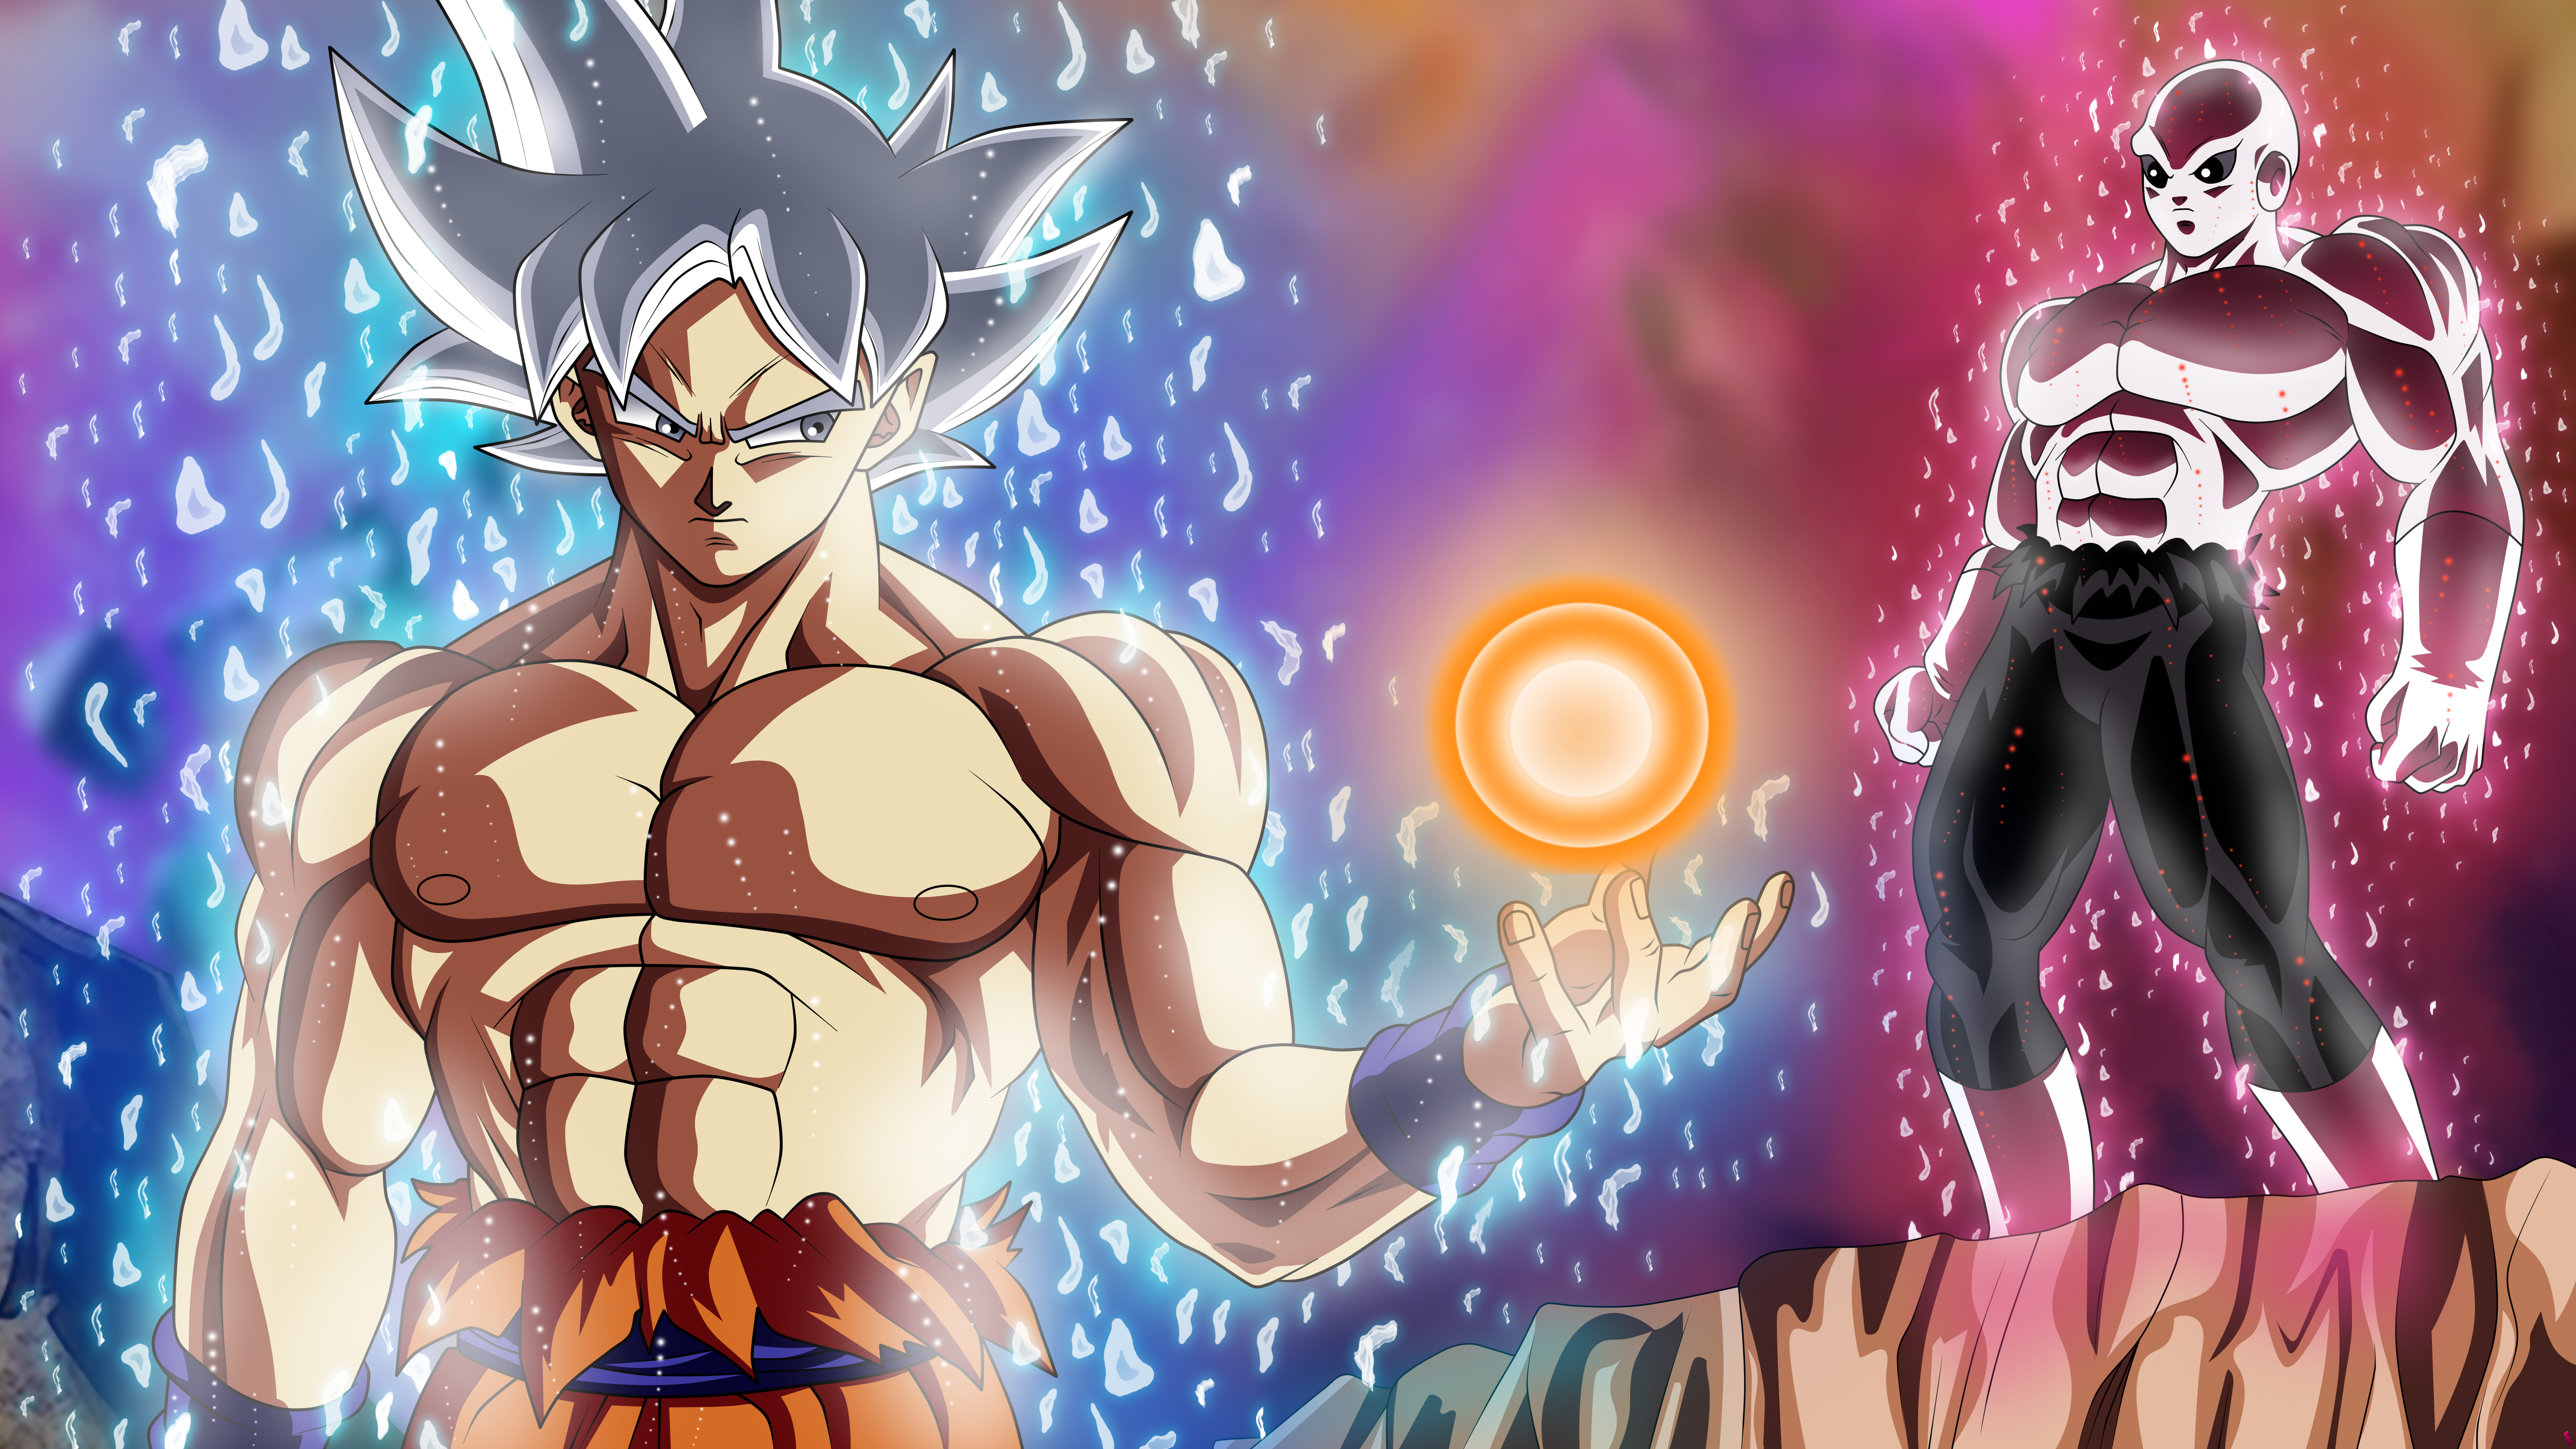 Goku Vs Jiren 5k Retina Ultra Hd Wallpaper Background Image